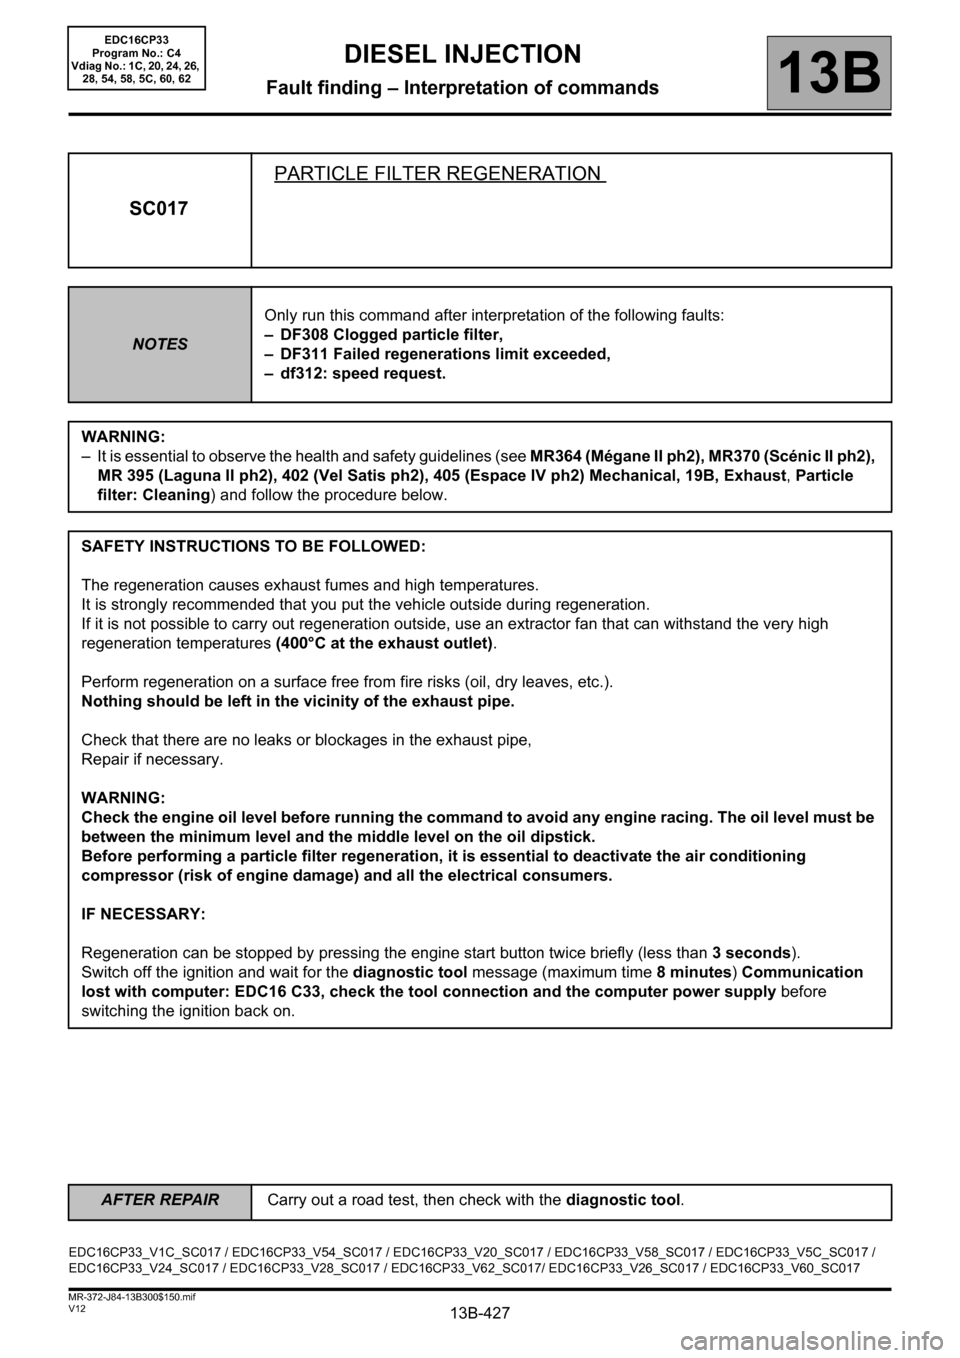 RENAULT SCENIC 2012 J95 / 3.G Engine And Peripherals EDC16CP33 Workshop Manual, Page 427